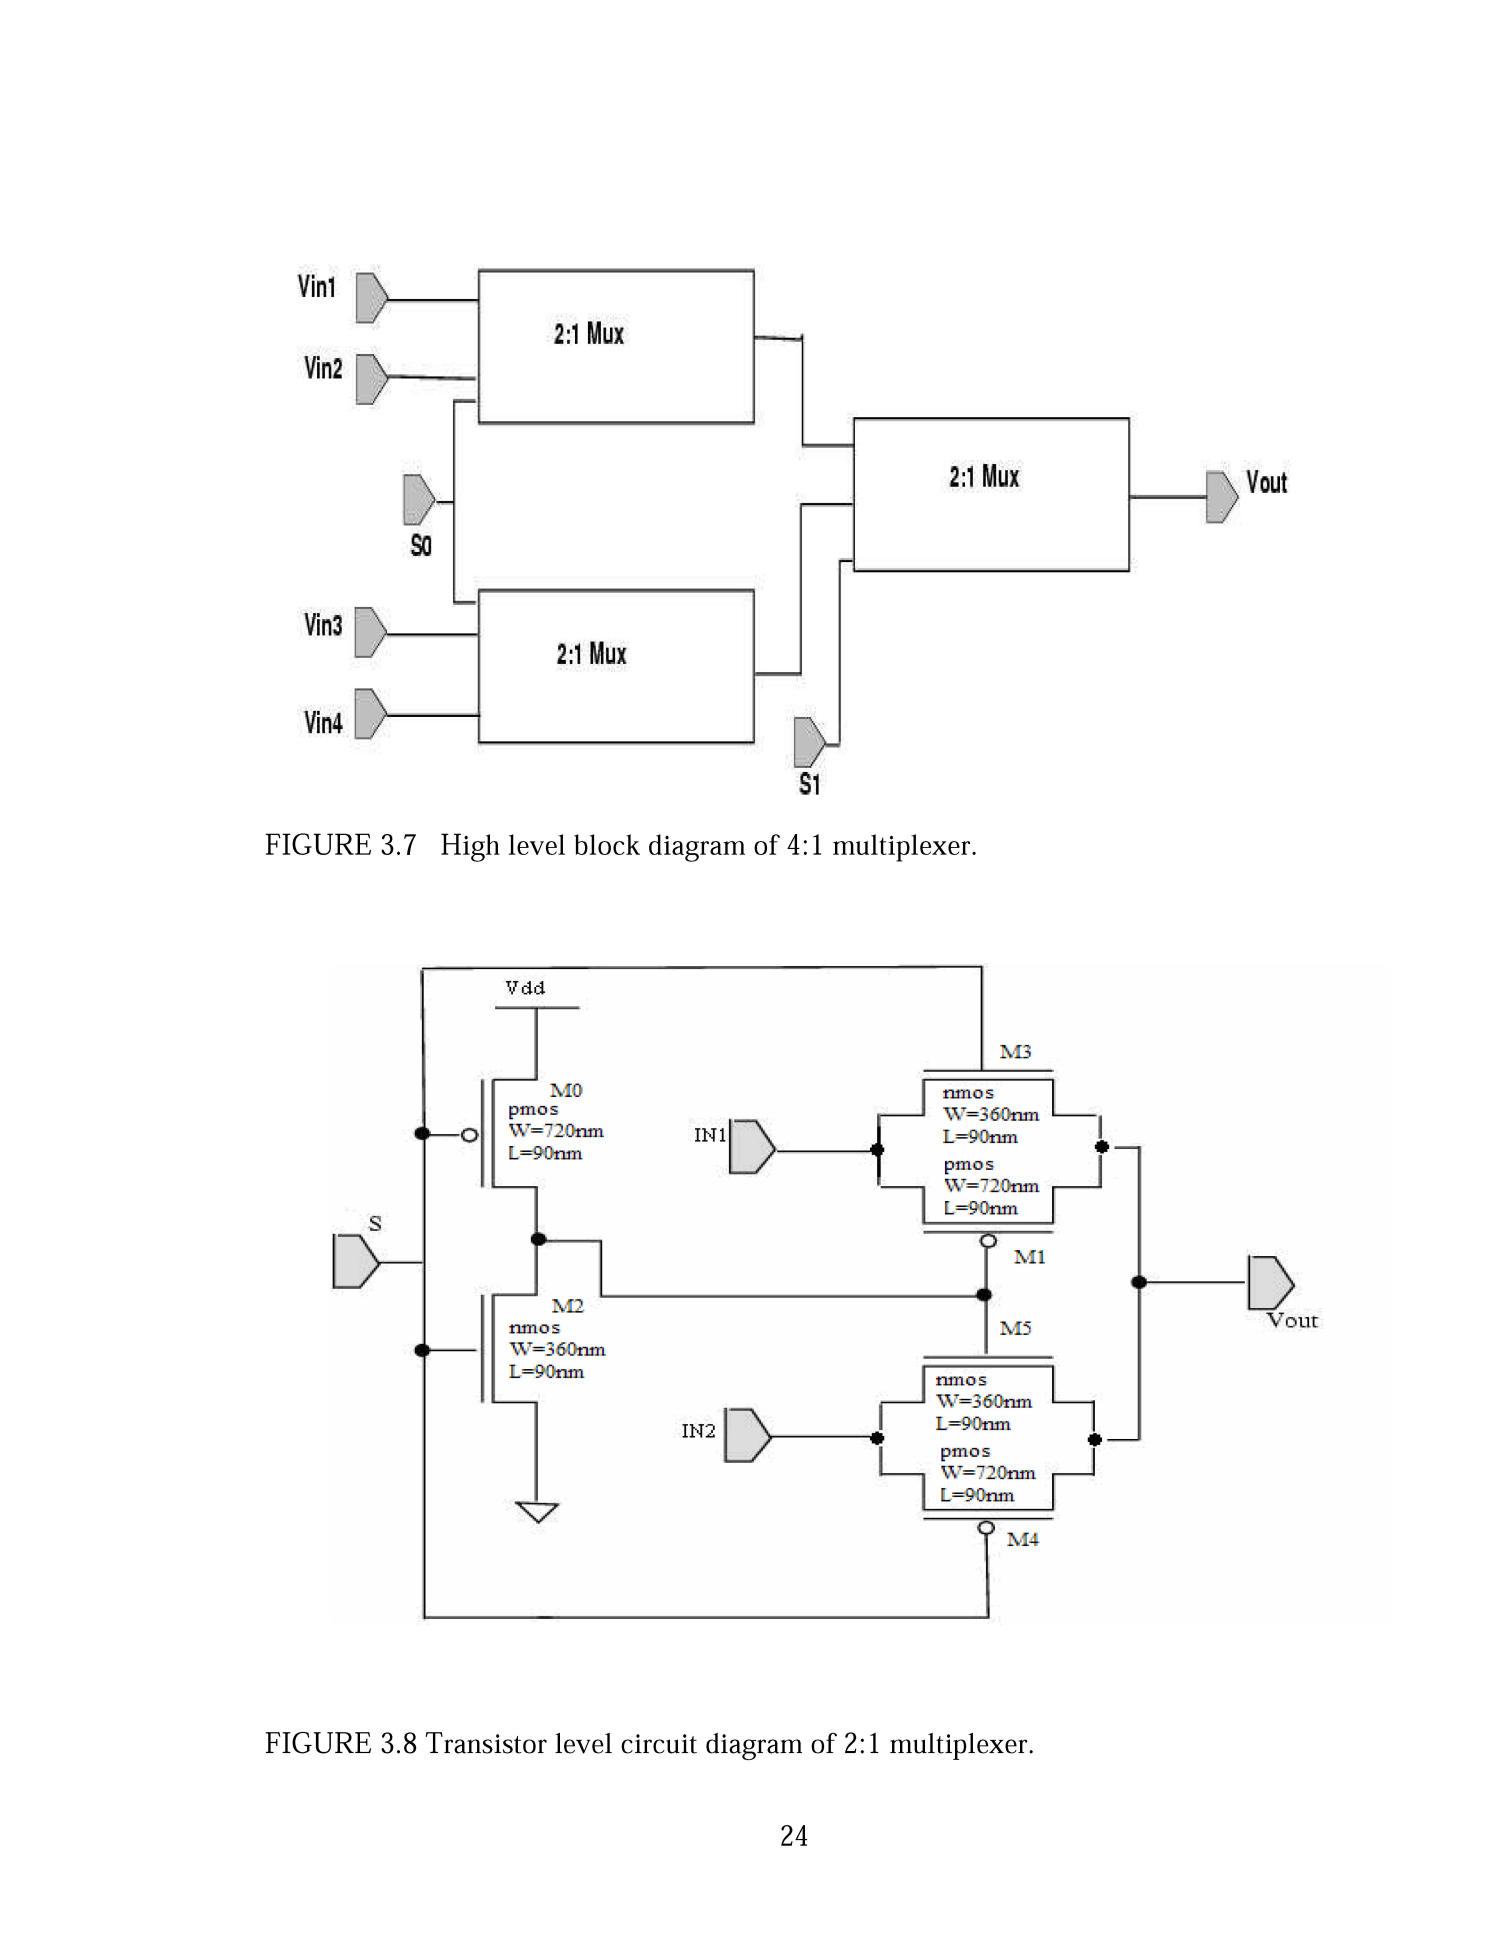 A Nano Cmos Based Universal Voltage Level Converter For Multi Vdd 2 1 Mux Logic Diagram Extracted Text